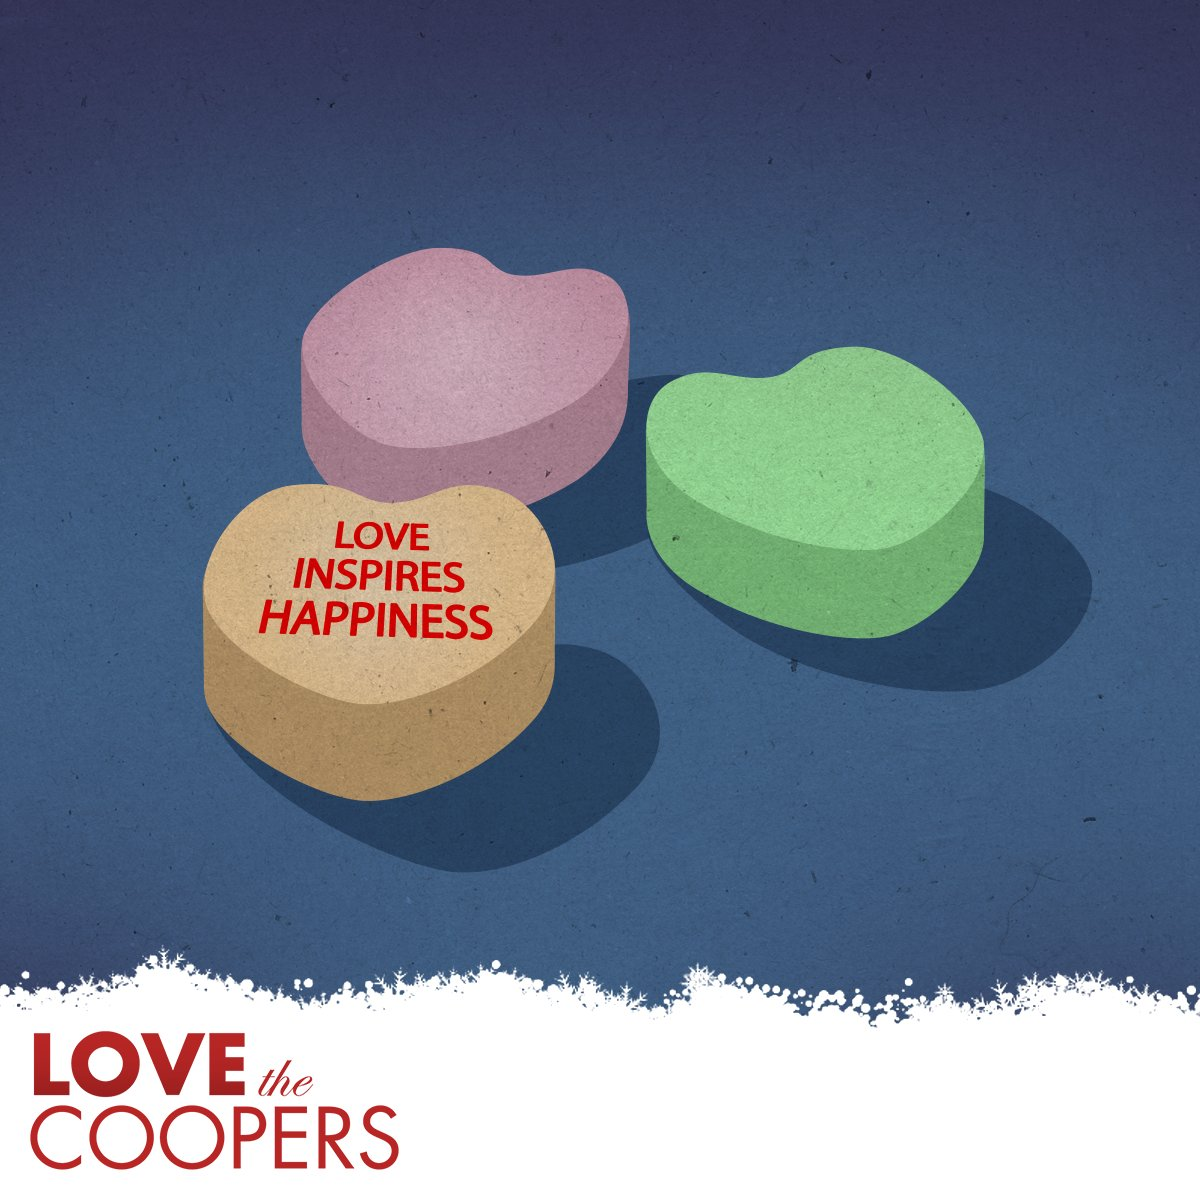 Always follow your heart. Especially if it's made out of candy.  #LoveTheCoopers https://t.co/AYHukXeNbt